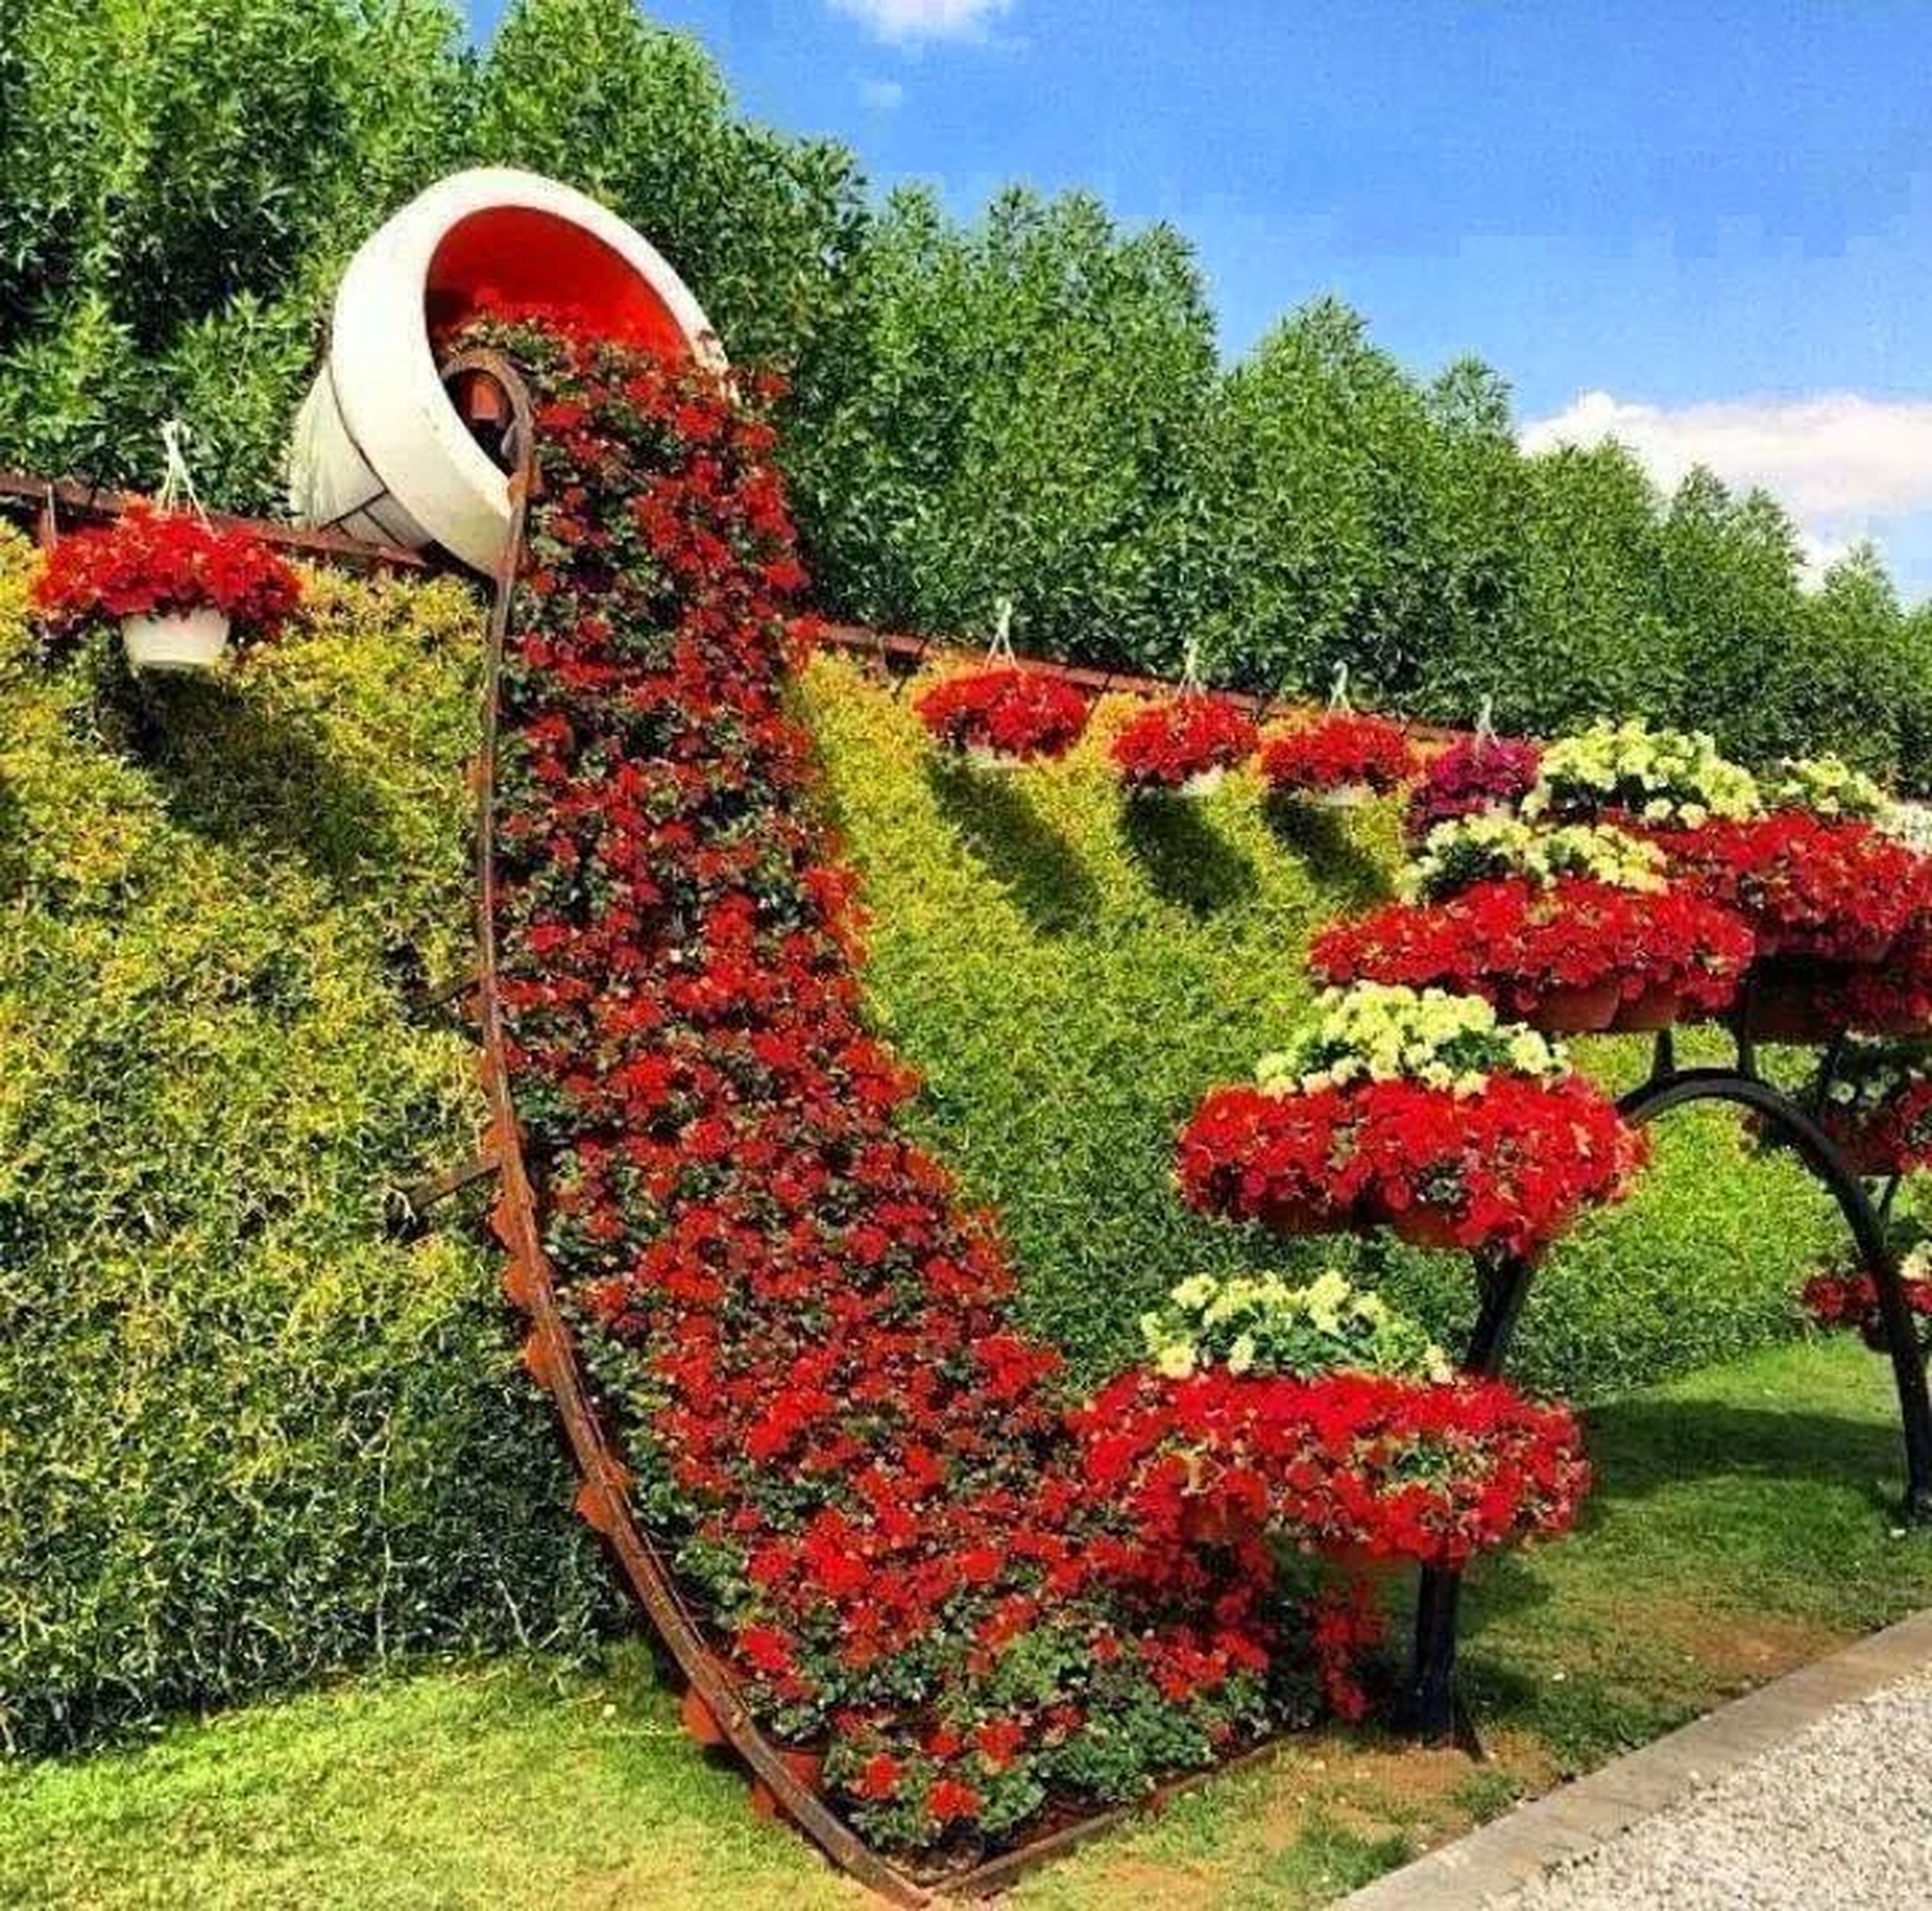 tree, growth, red, grass, park - man made space, flower, green color, plant, nature, field, sky, day, outdoors, sunlight, beauty in nature, garden, tranquility, lawn, park, no people